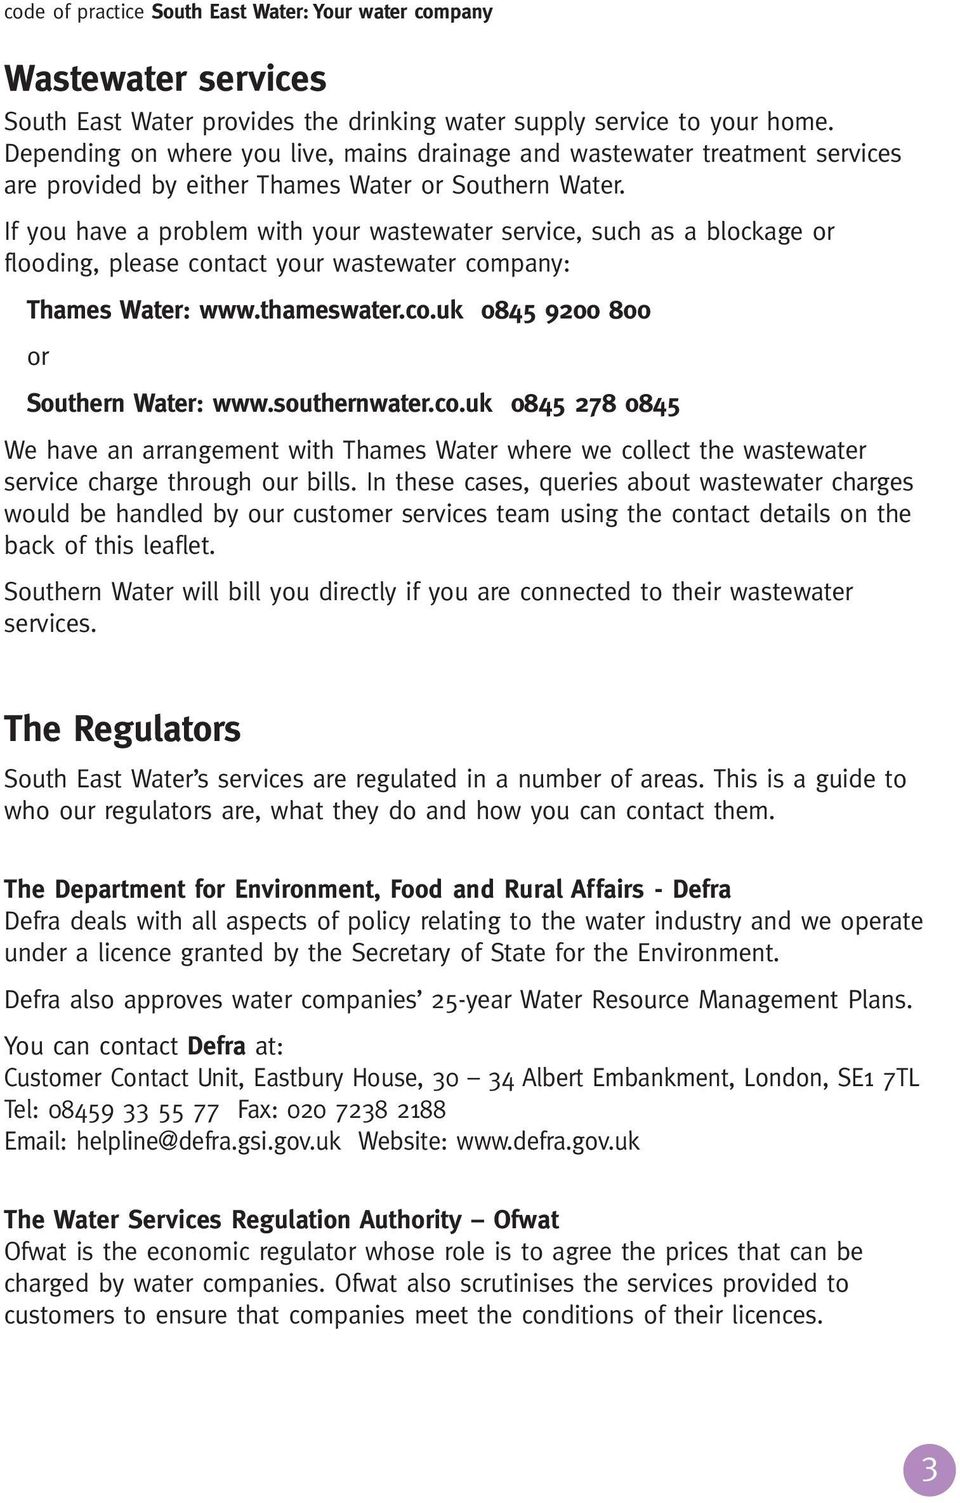 If you have a problem with your wastewater service, such as a blockage or flooding, please contact your wastewater company: Thames Water: www.thameswater.co.uk 0845 9200 800 or Southern Water: www.